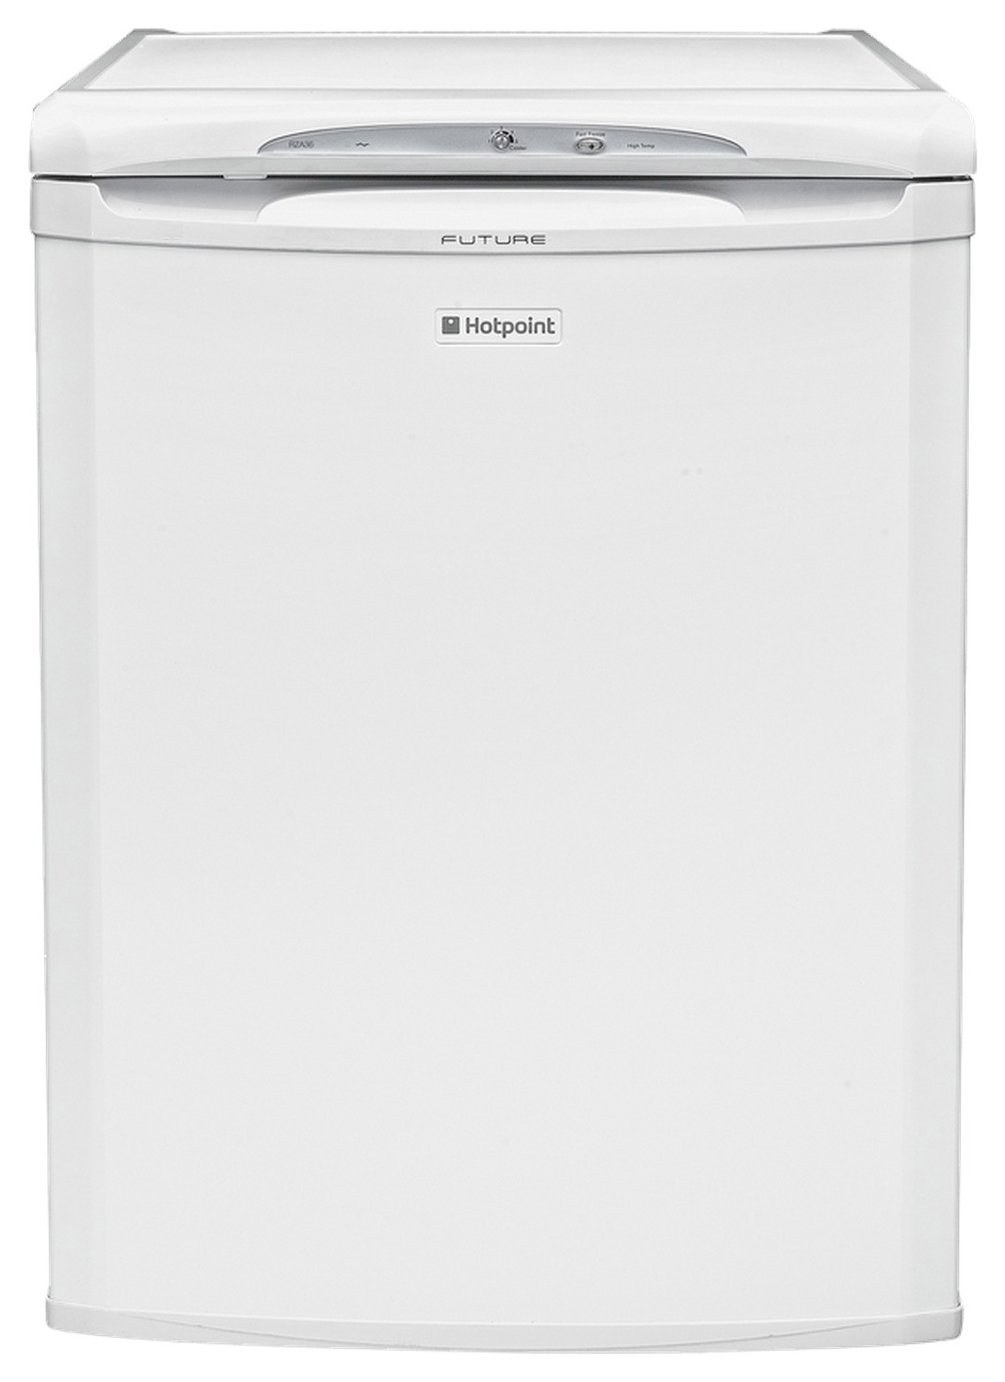 Hotpoint RZA36P.1 Freestanding Under Counter Freezer - White